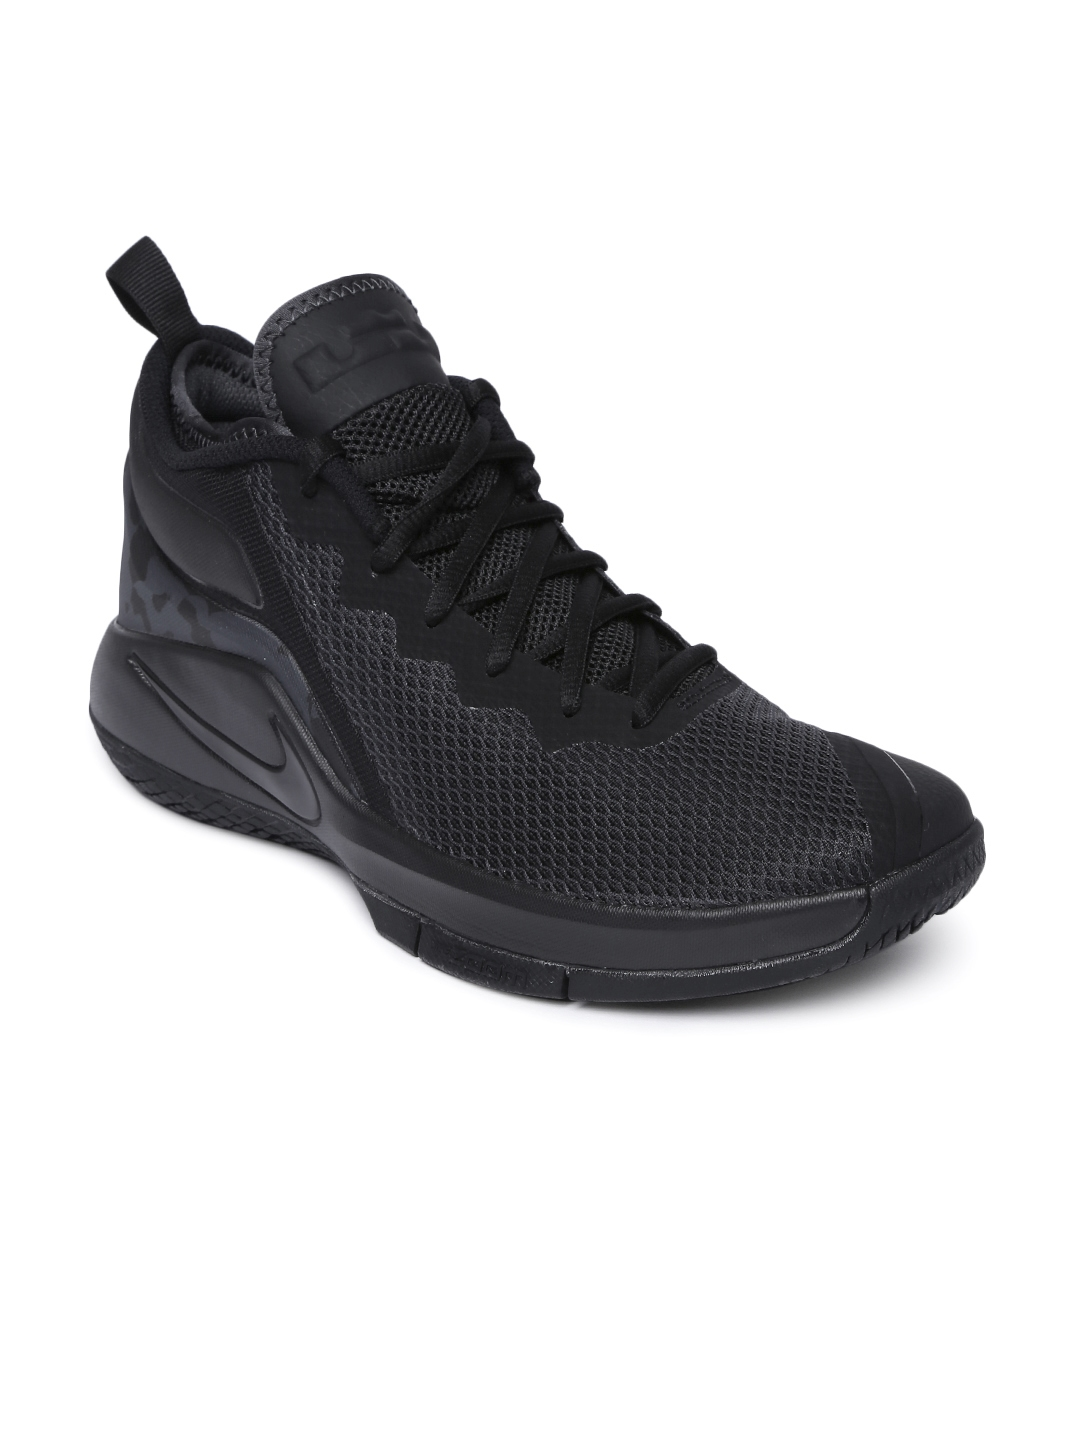 22ee51520a5db Nike Men Black Textile LEBRON WITNESS II Mid-Top Basketball Shoes. This  product is already at its best price